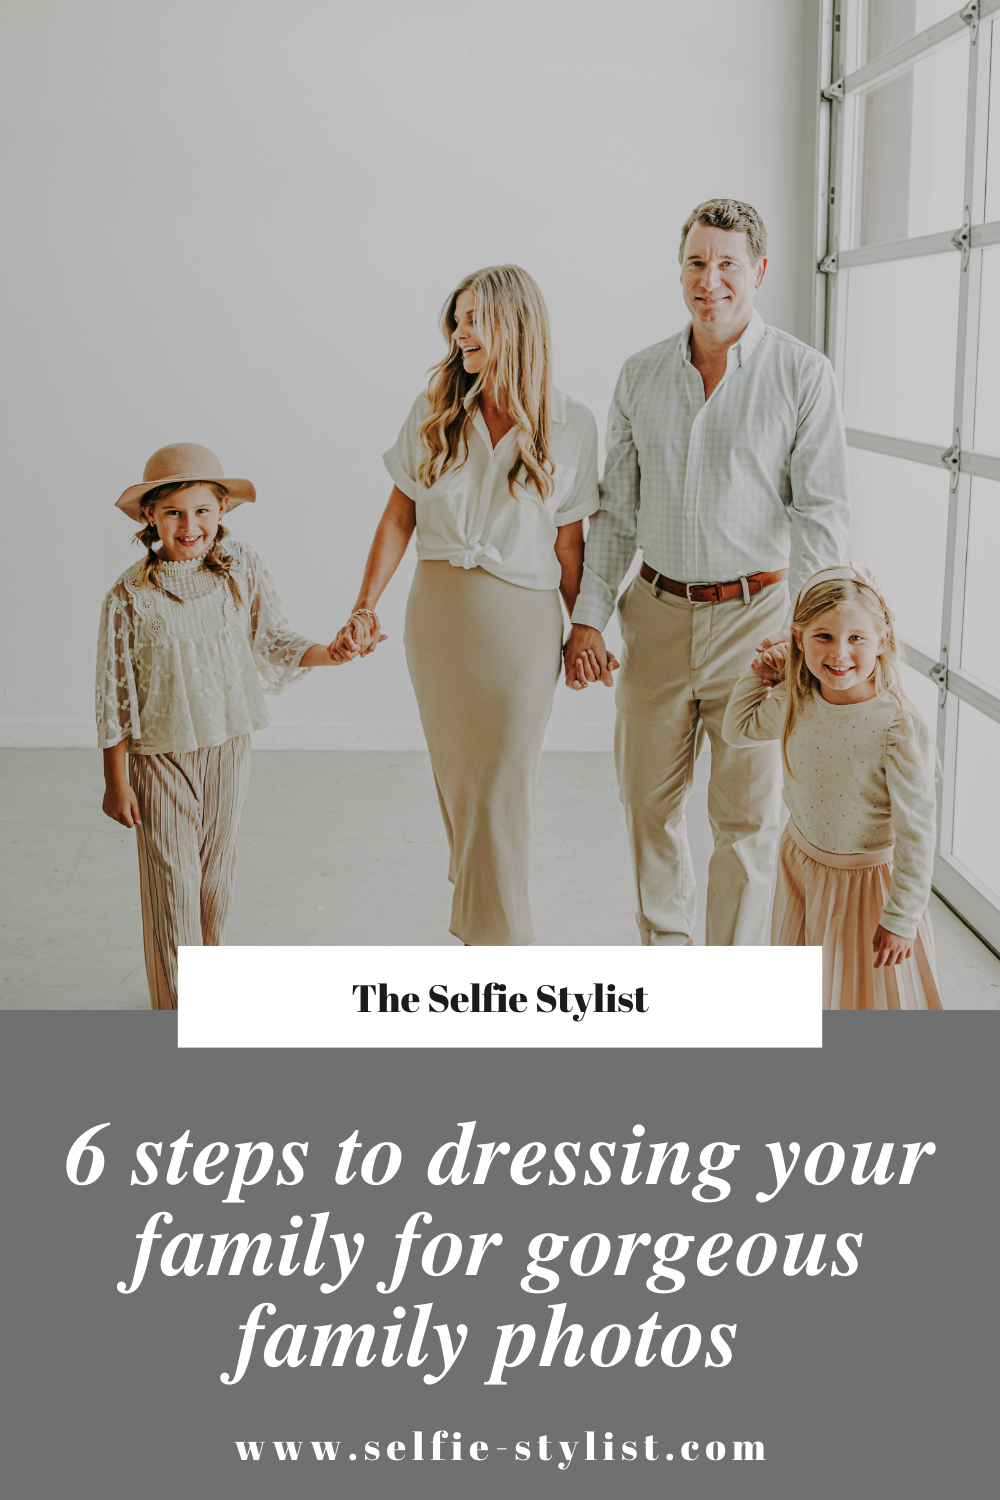 6 steps to dressing your family for gorgeous family photos